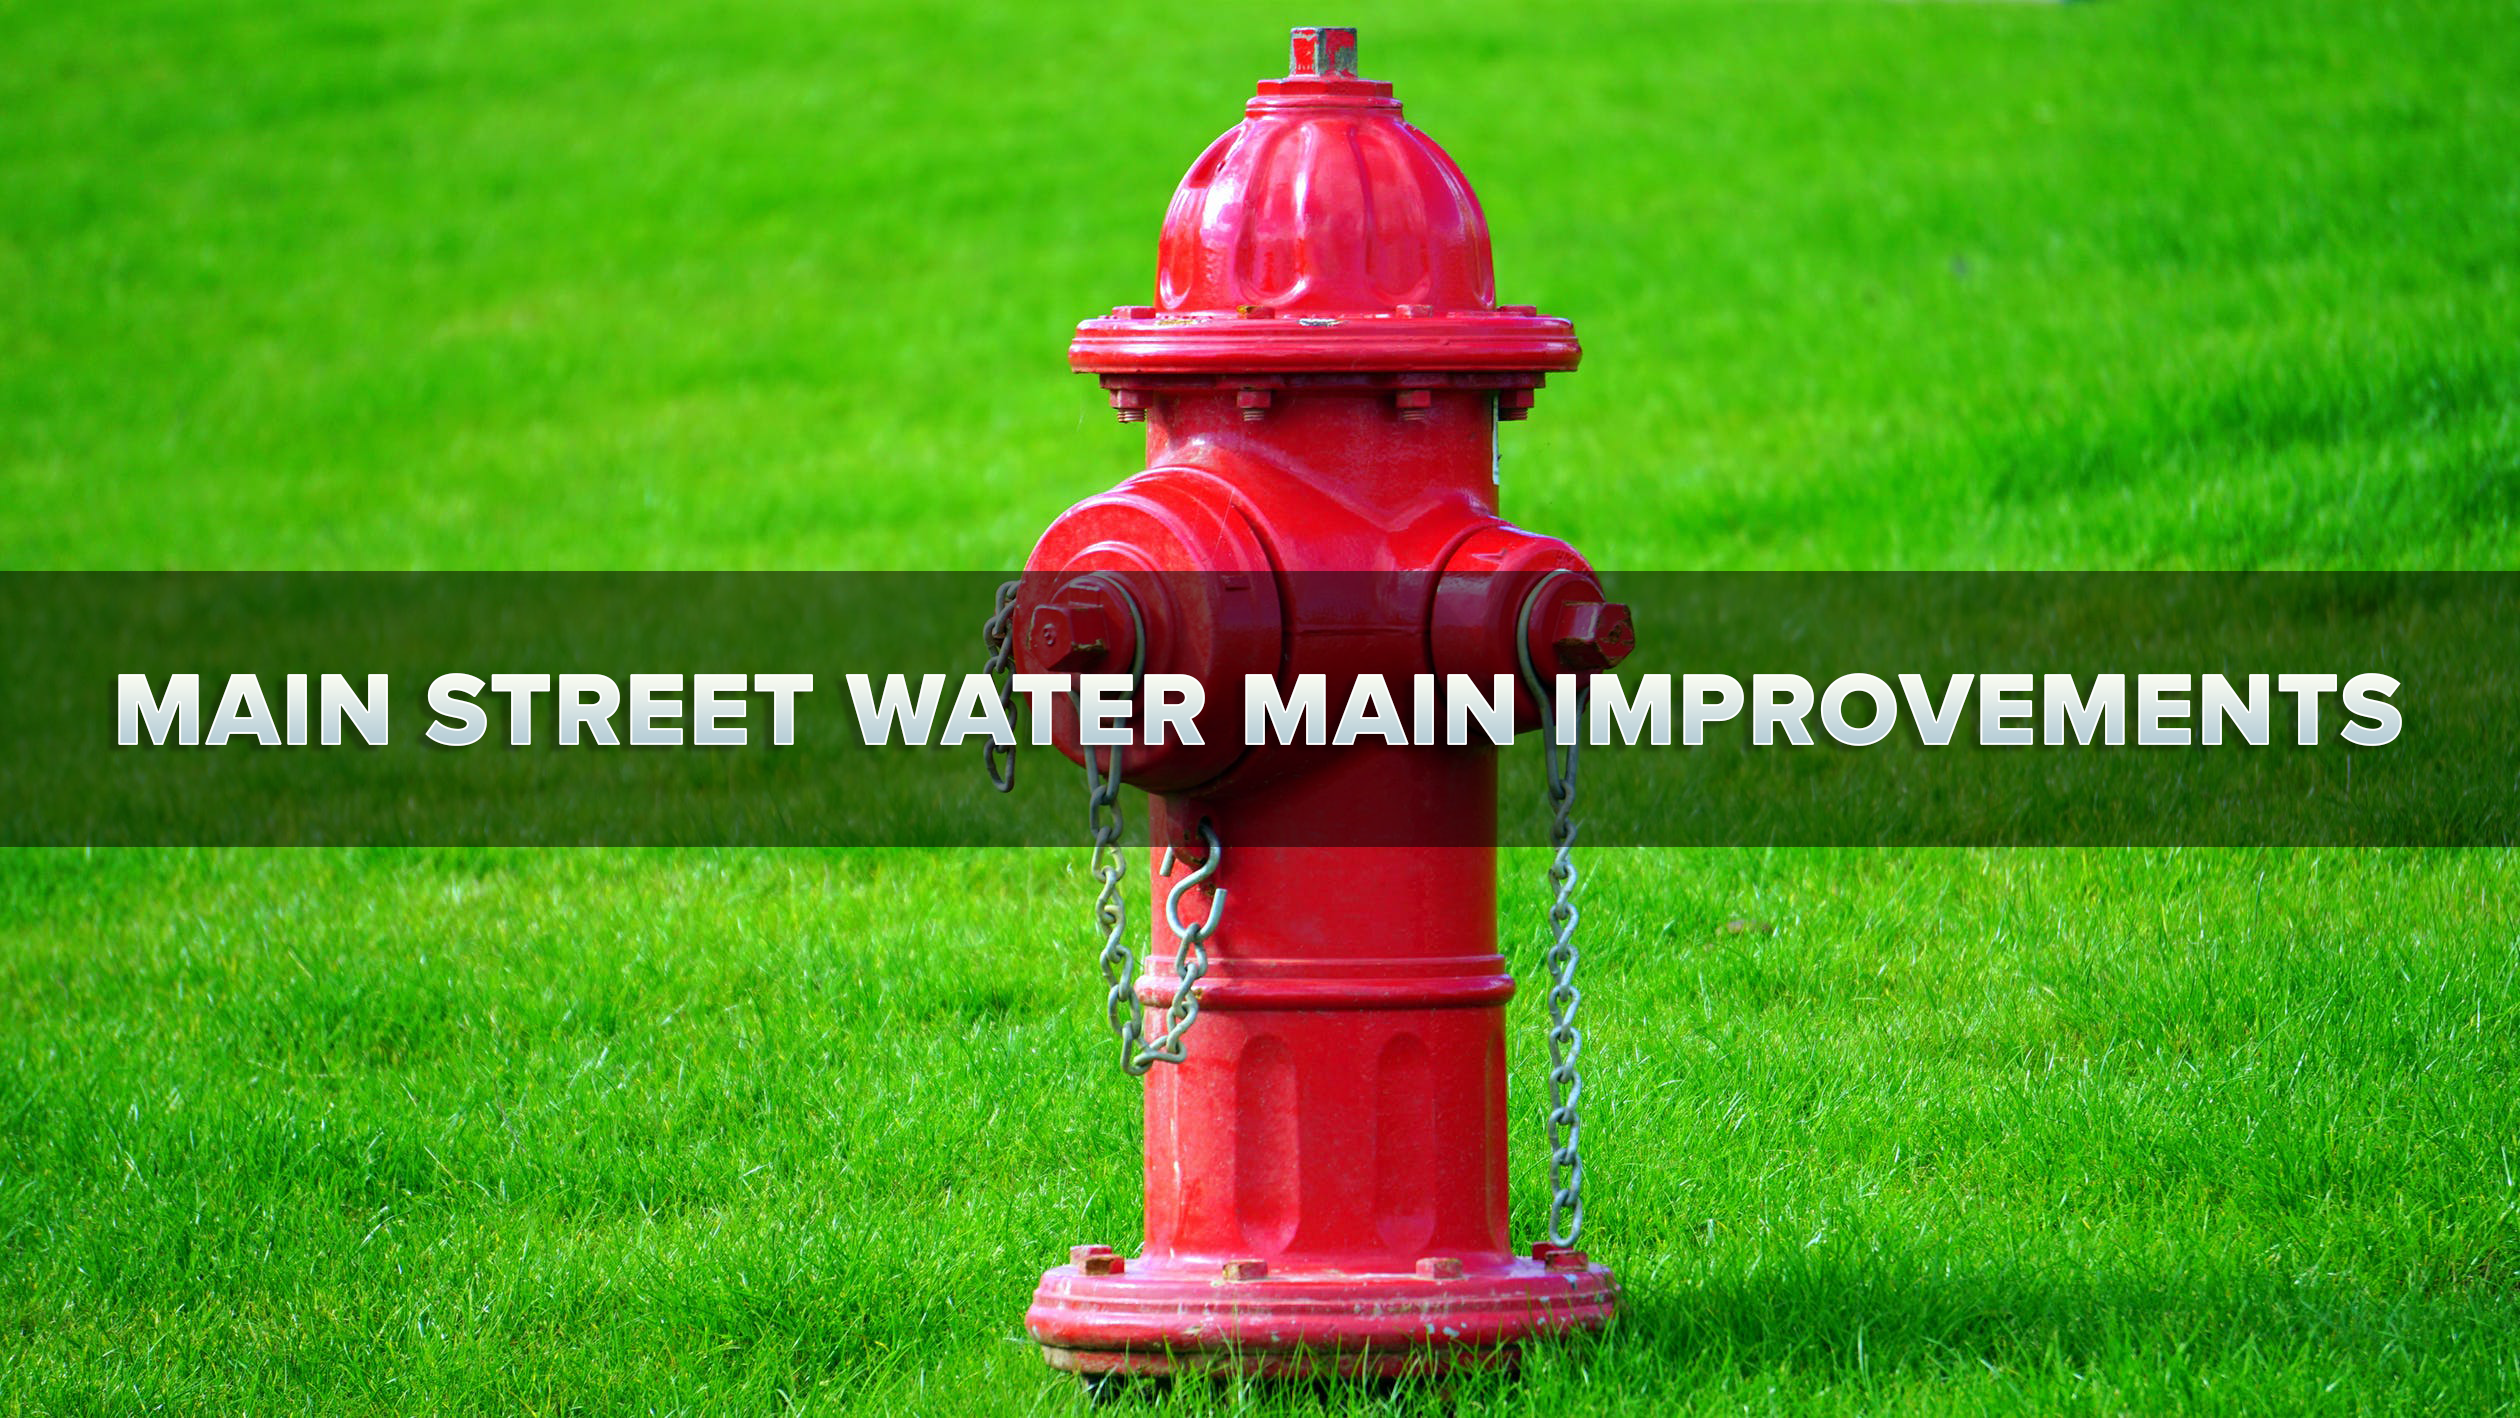 mainstreetwatermain